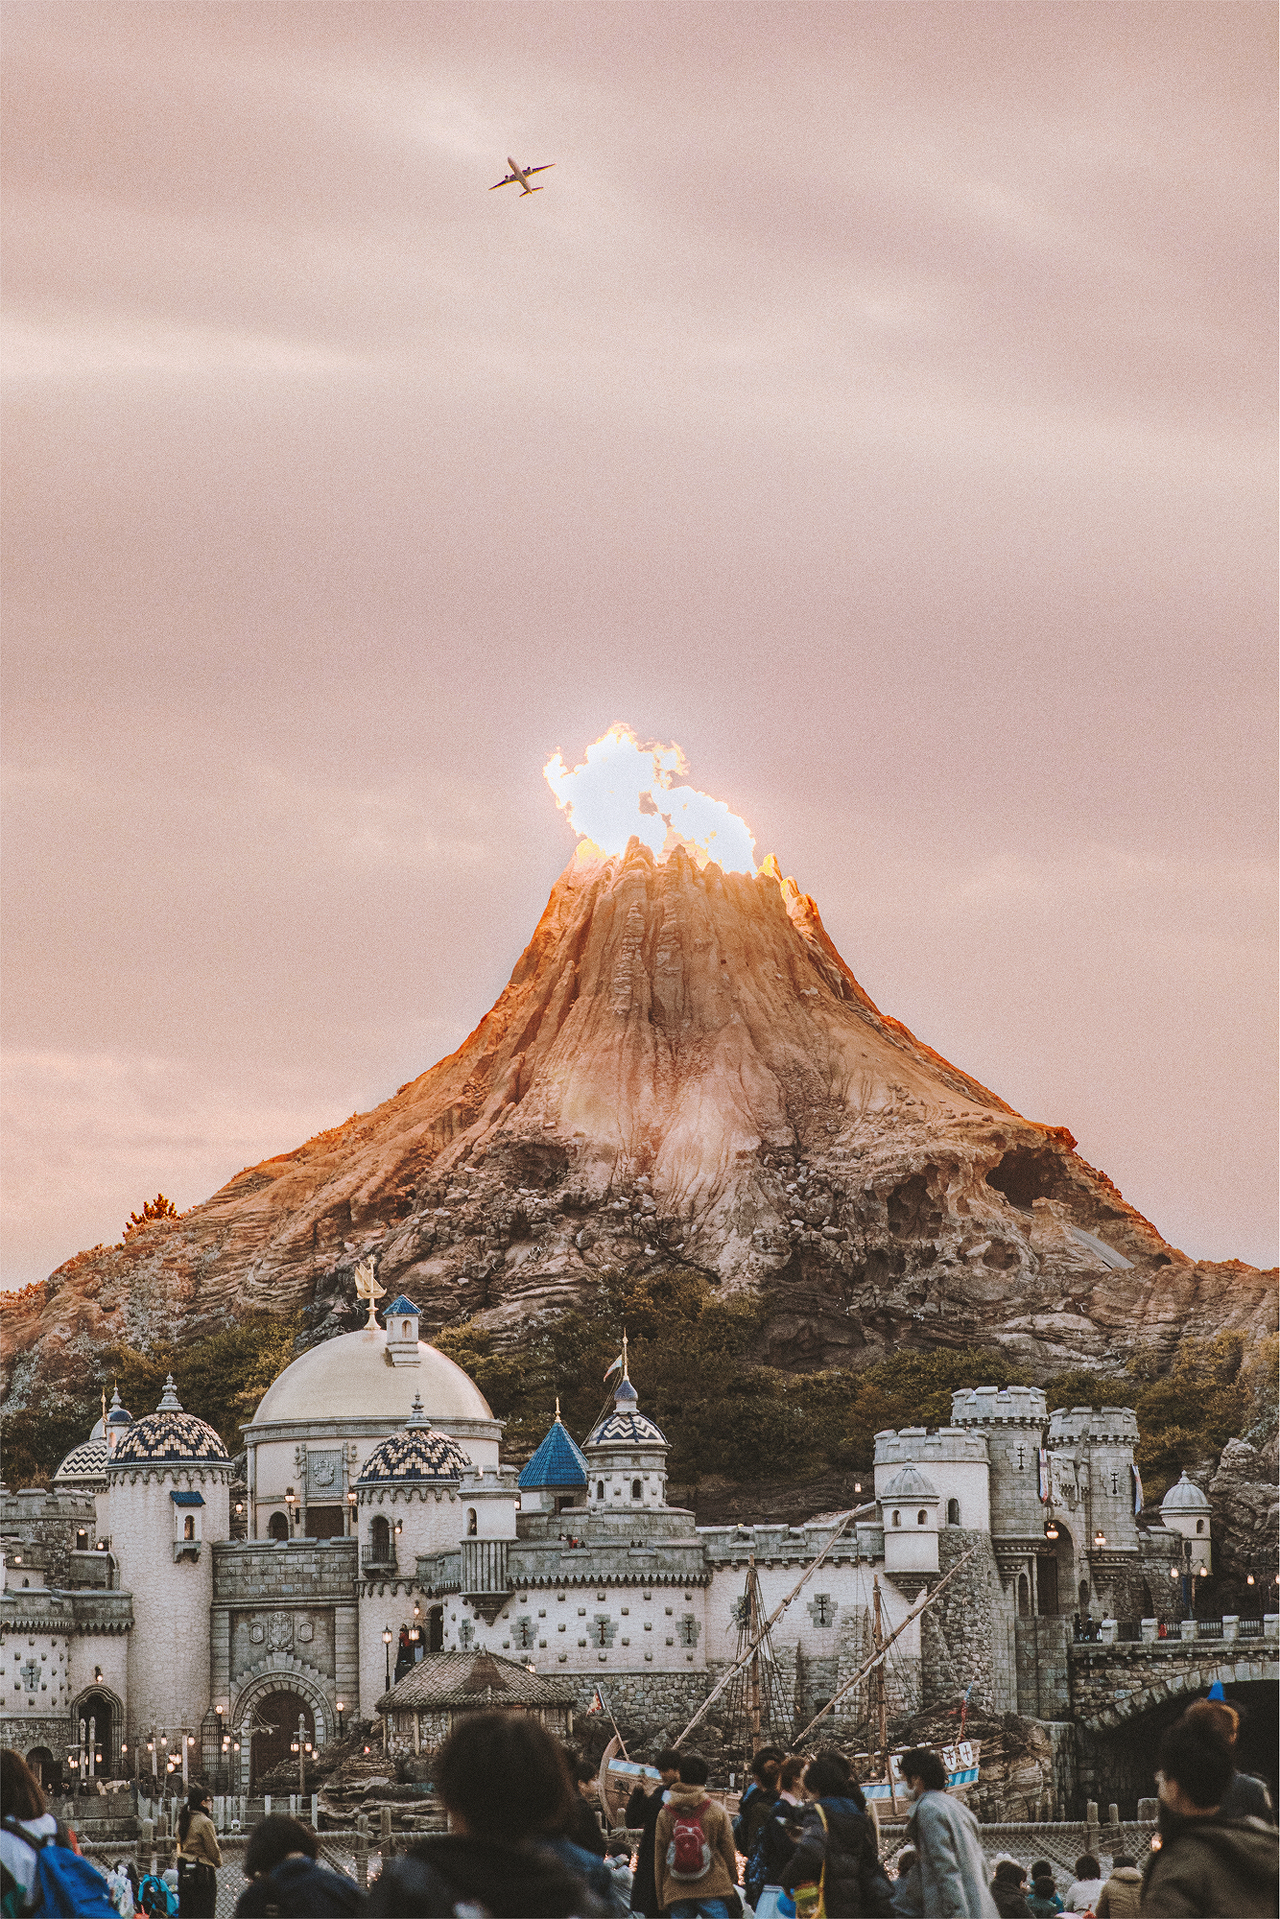 Look at Mount Prometheus erupt! This stunning display really brings DisneySea to life.